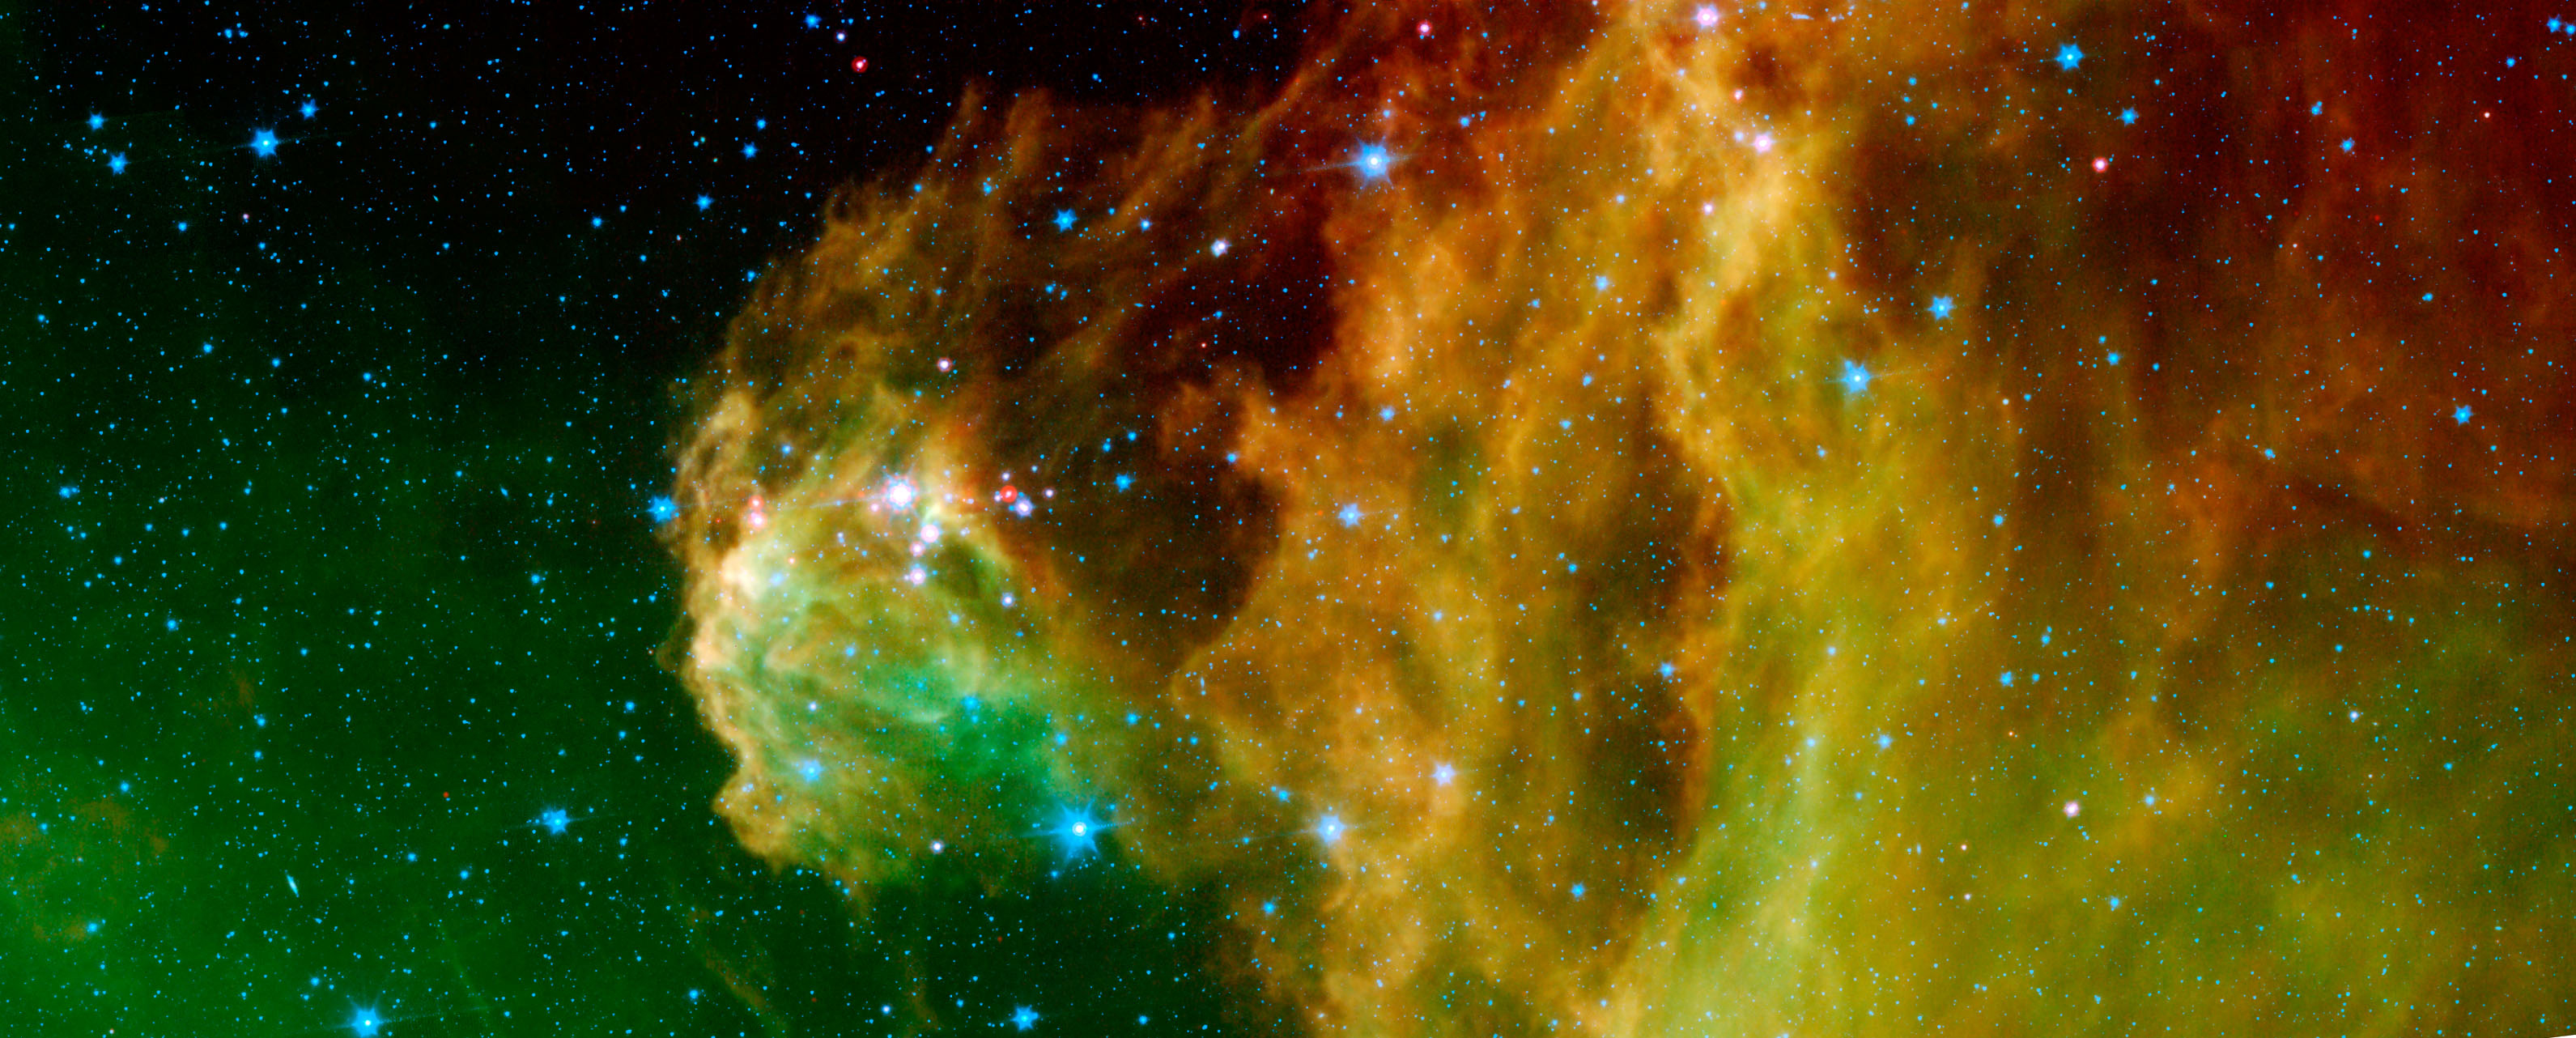 ORGANIC-MOLECULES-FOUND-IN-AN-INFANT-STAR-SYSTEM